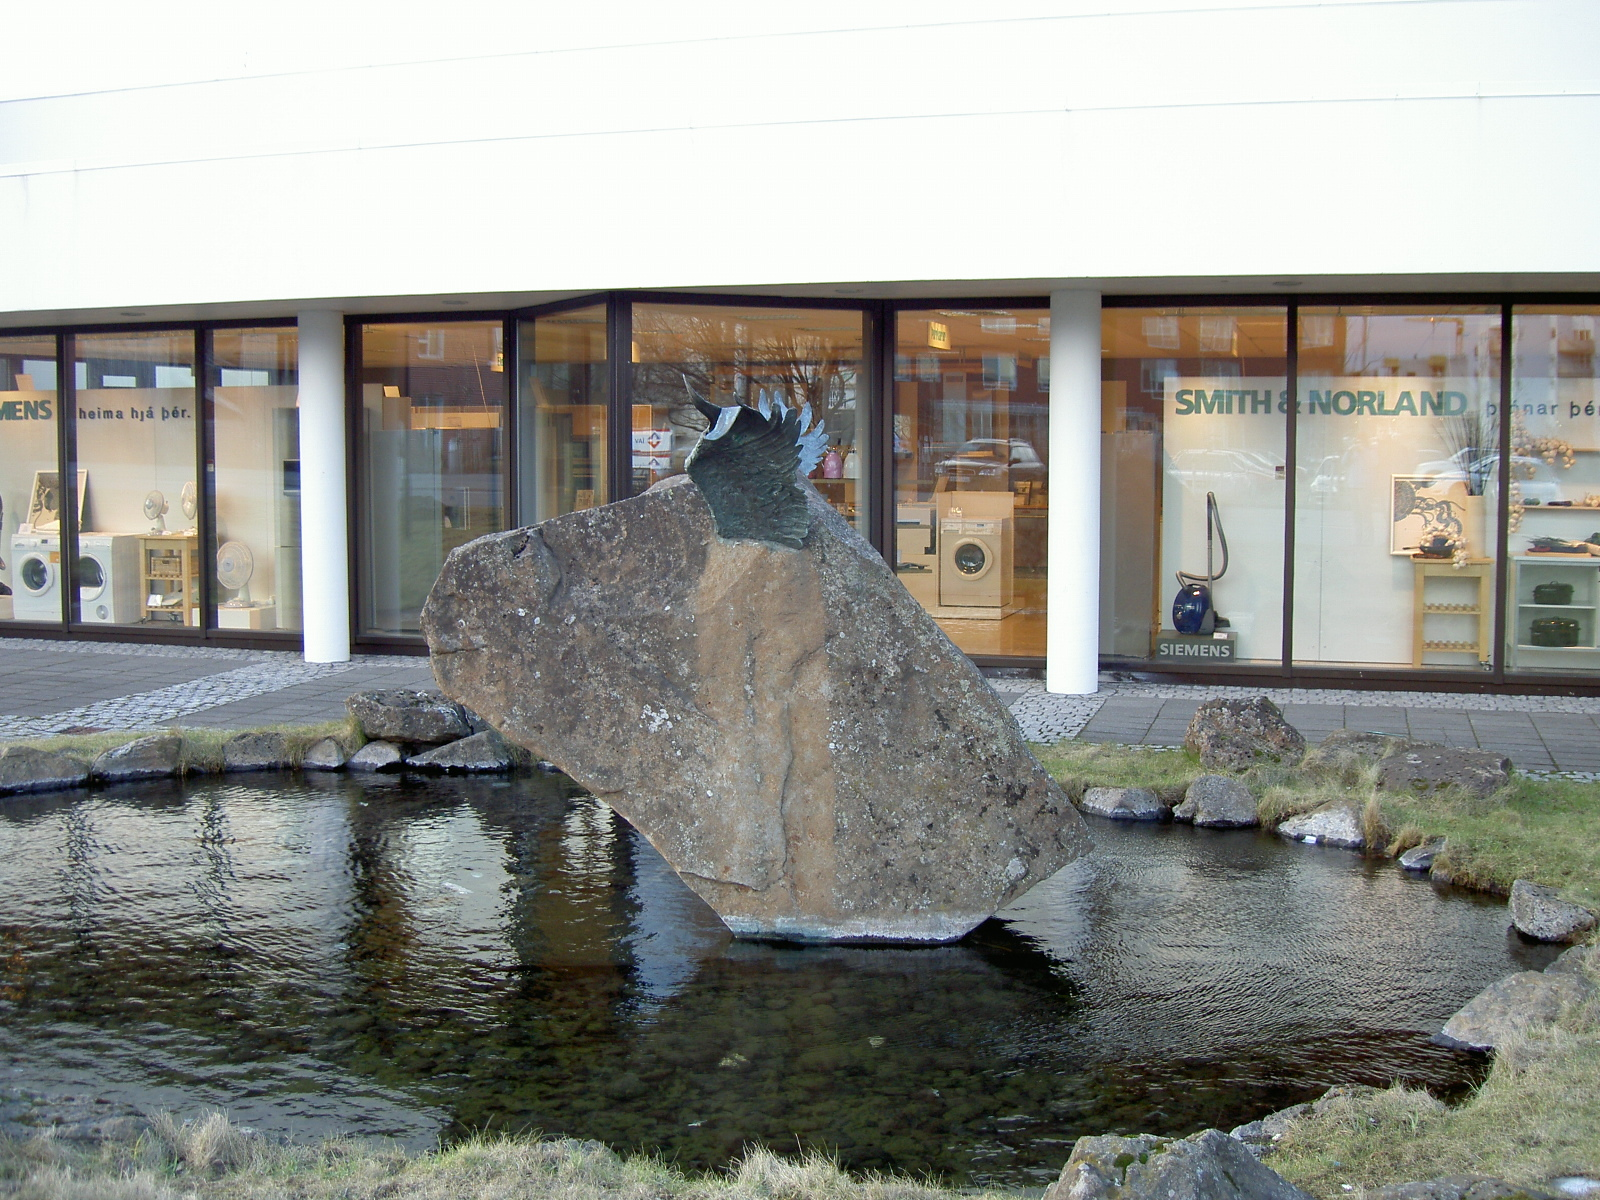 Odd sculpture in Reykjavik: moose or bird? (purpose of page is to display an image)